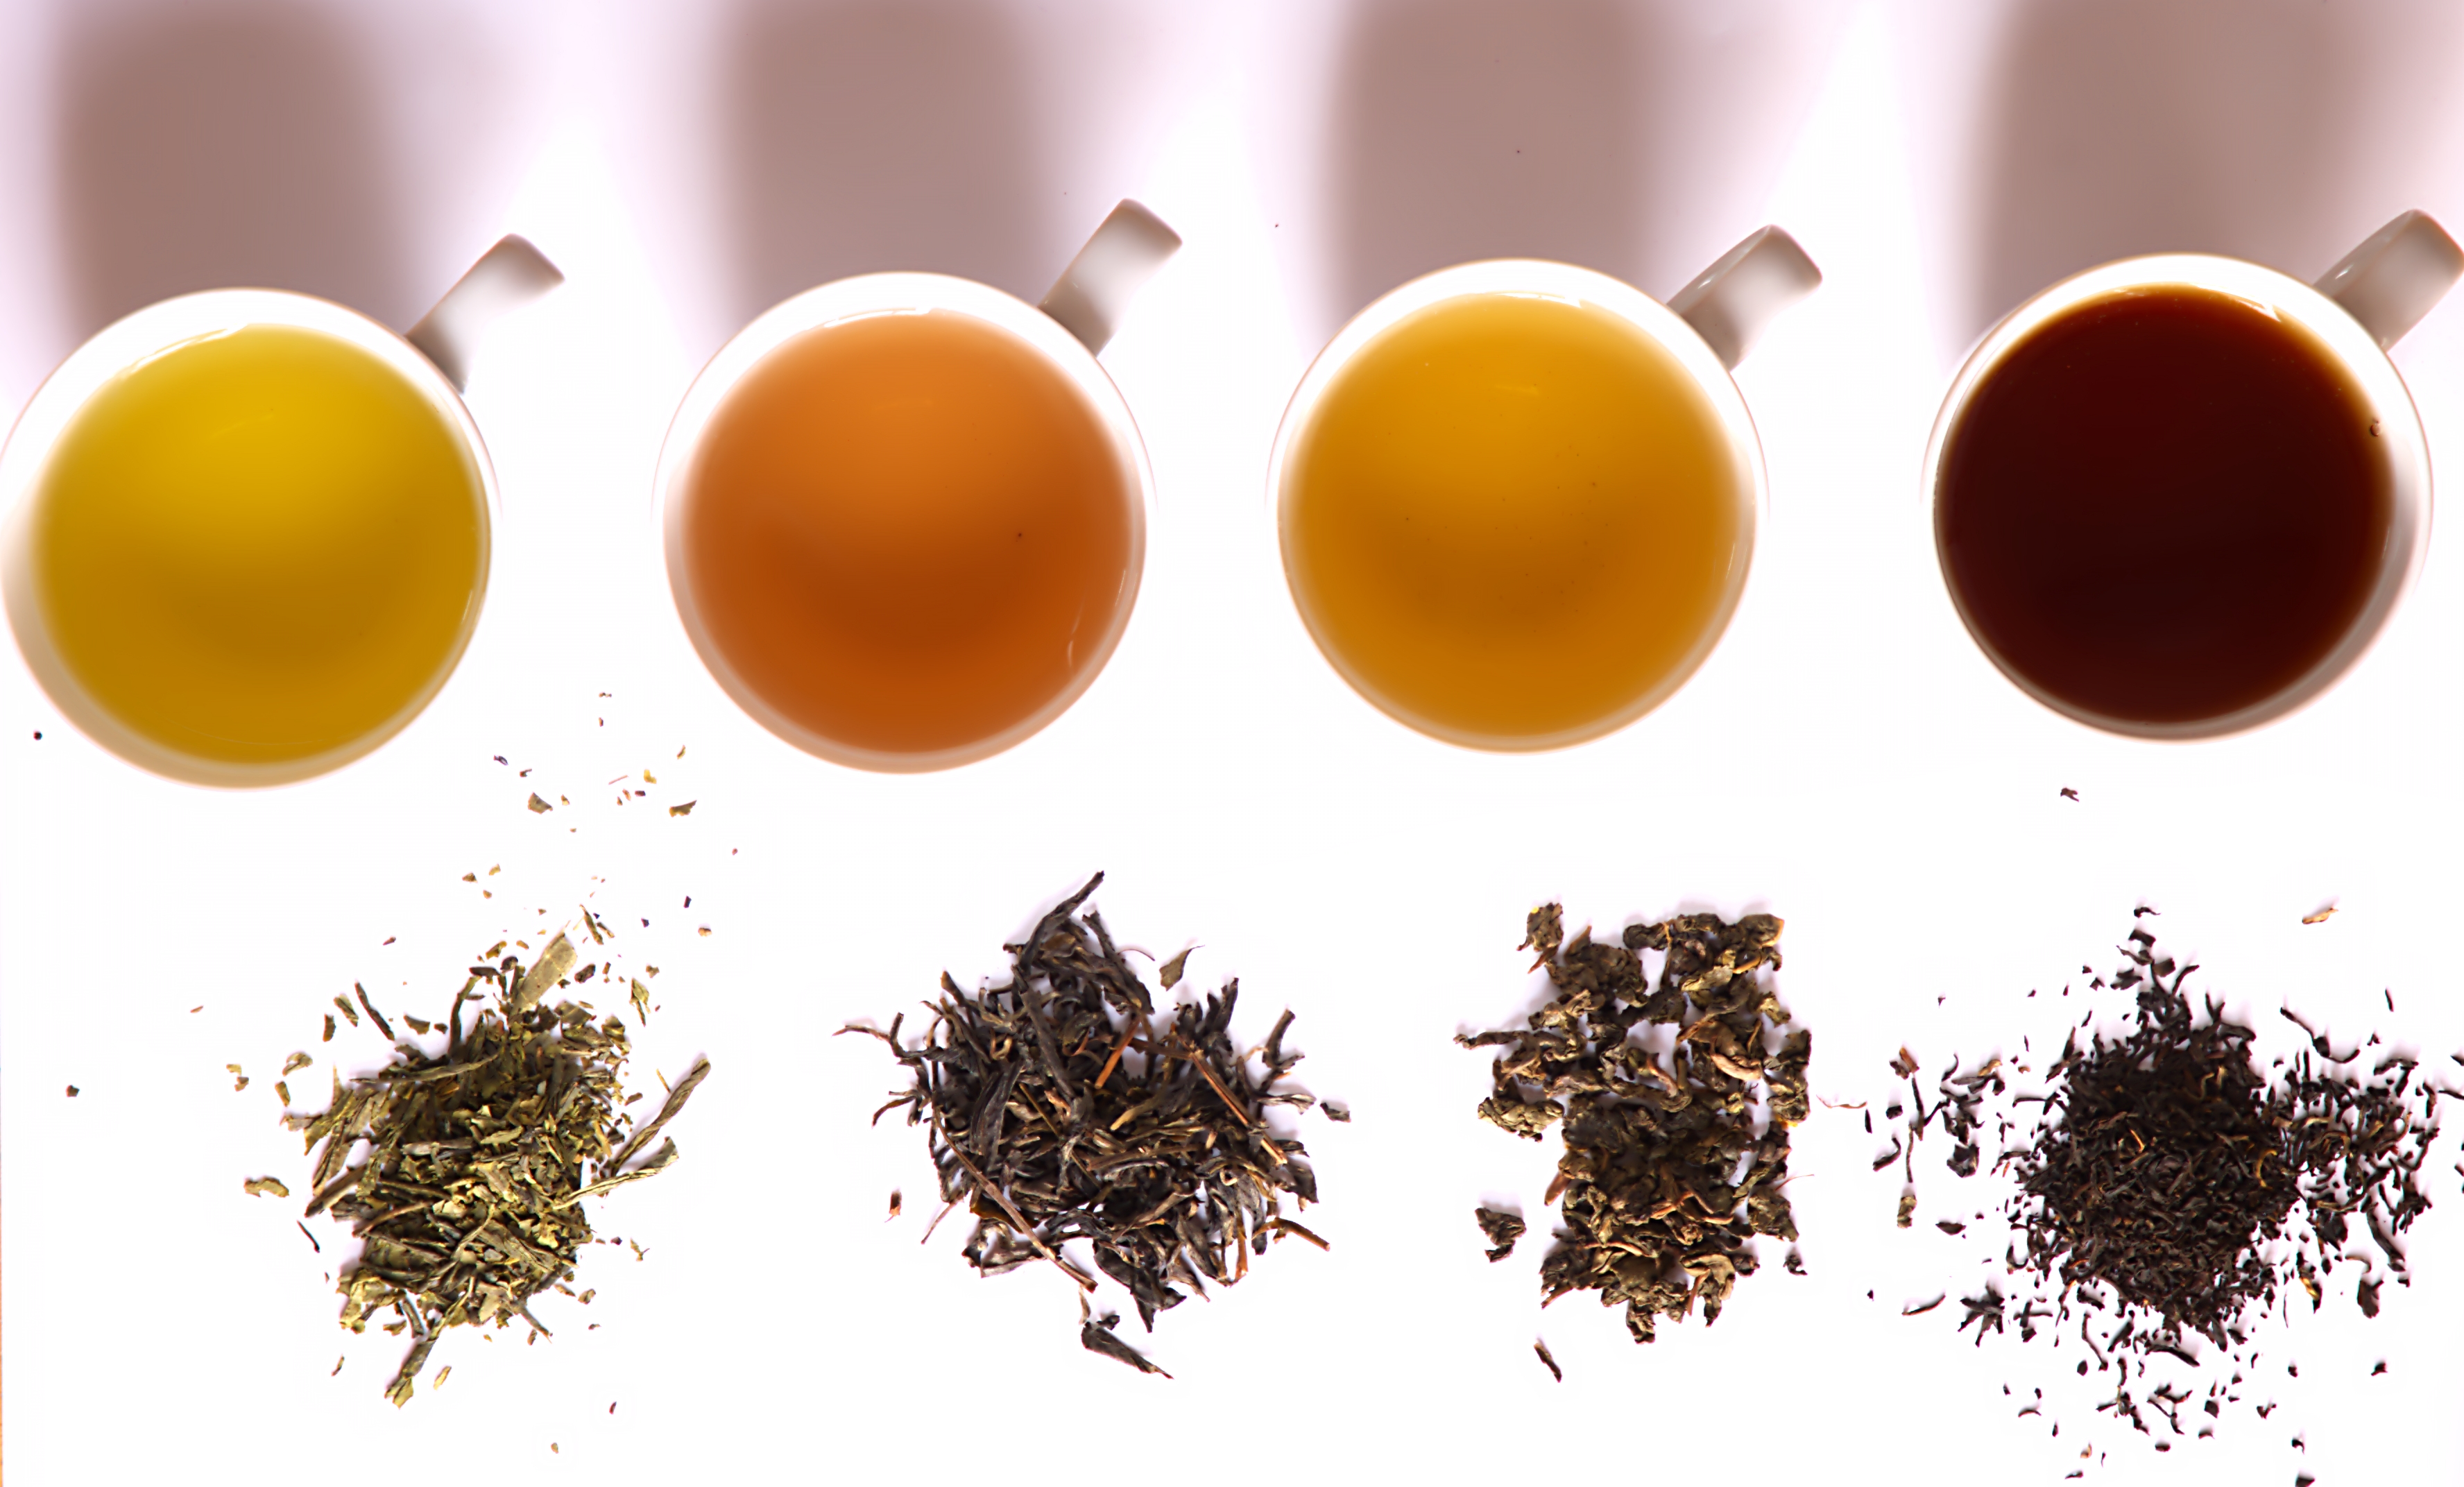 English: Tea of different fermentation: From left to right: Green tea (Bancha from Japan), Yellow tea (Kekecha from China), Oolong tea (Kwai flower from China) and Black tea (Assam Sonipur Bio FOP from India)